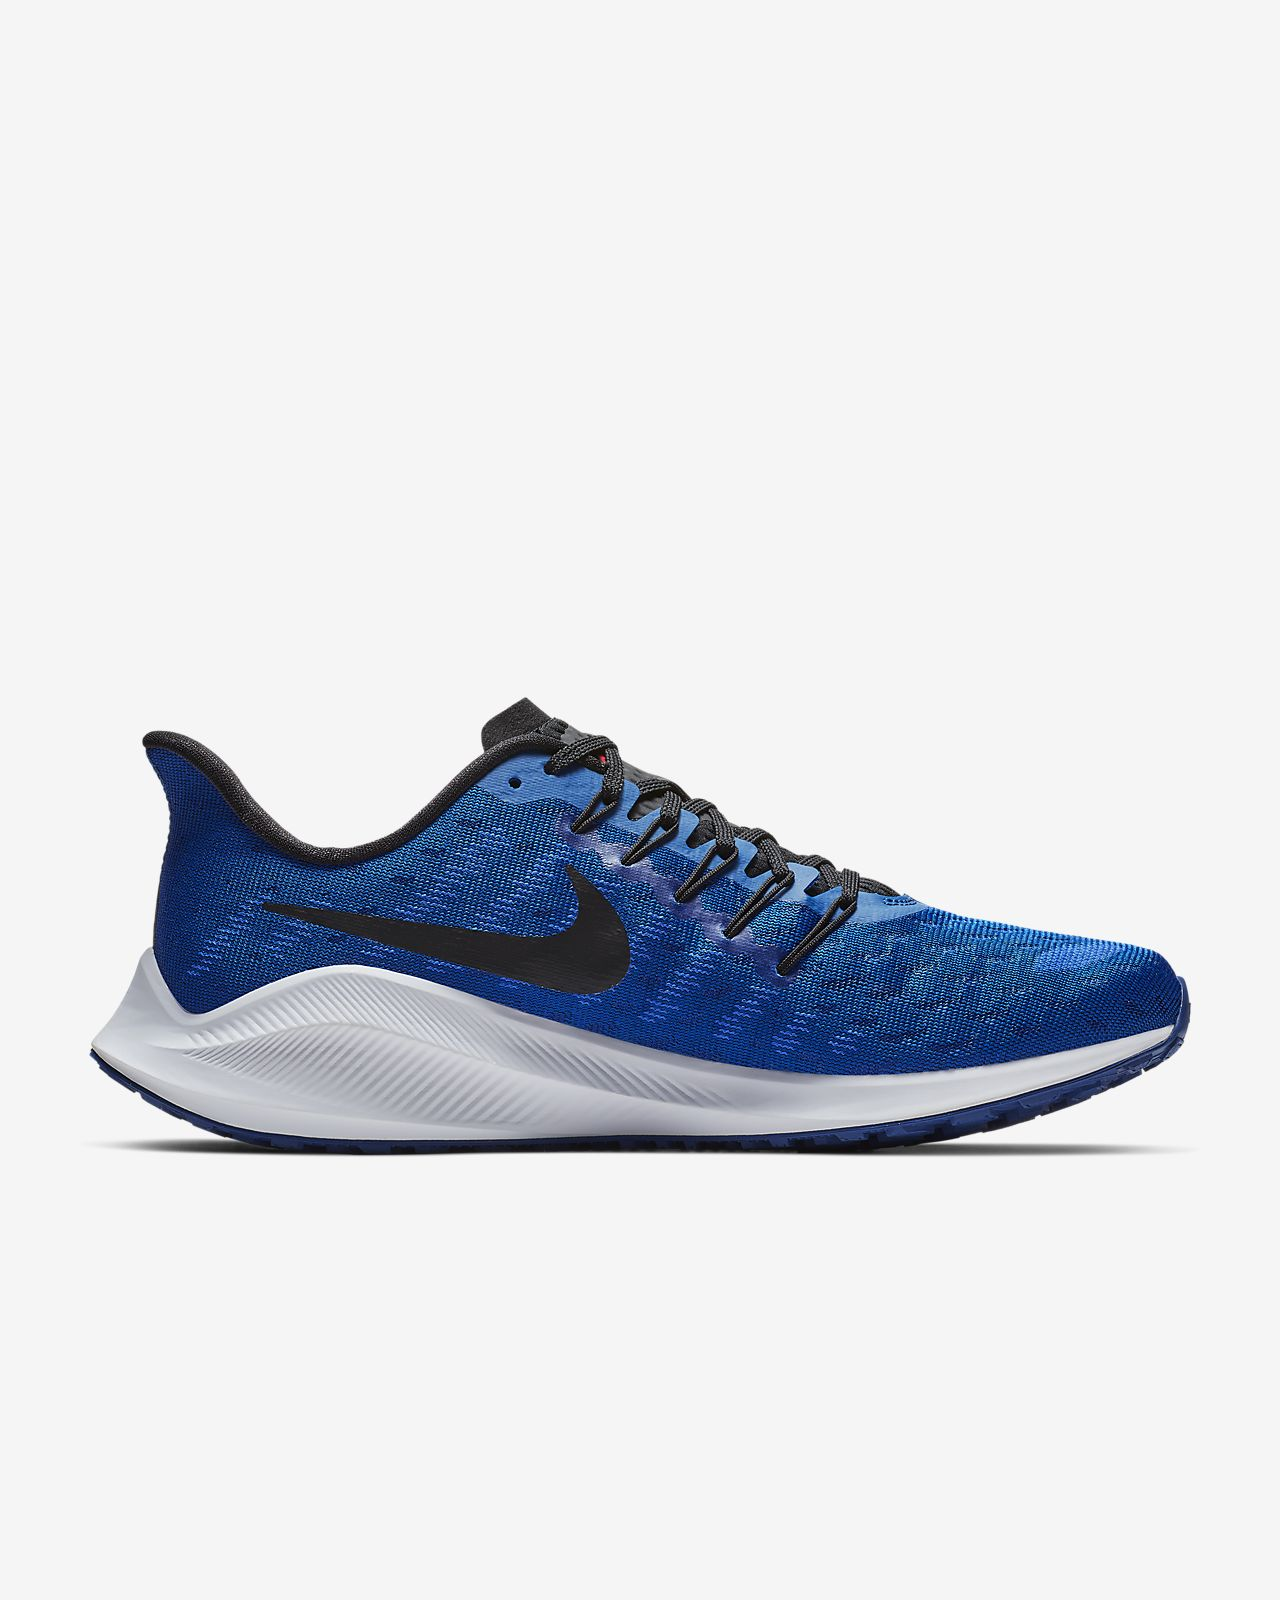 577834276d0466 Nike Air Zoom Vomero 14 Men s Running Shoe. Nike.com AU